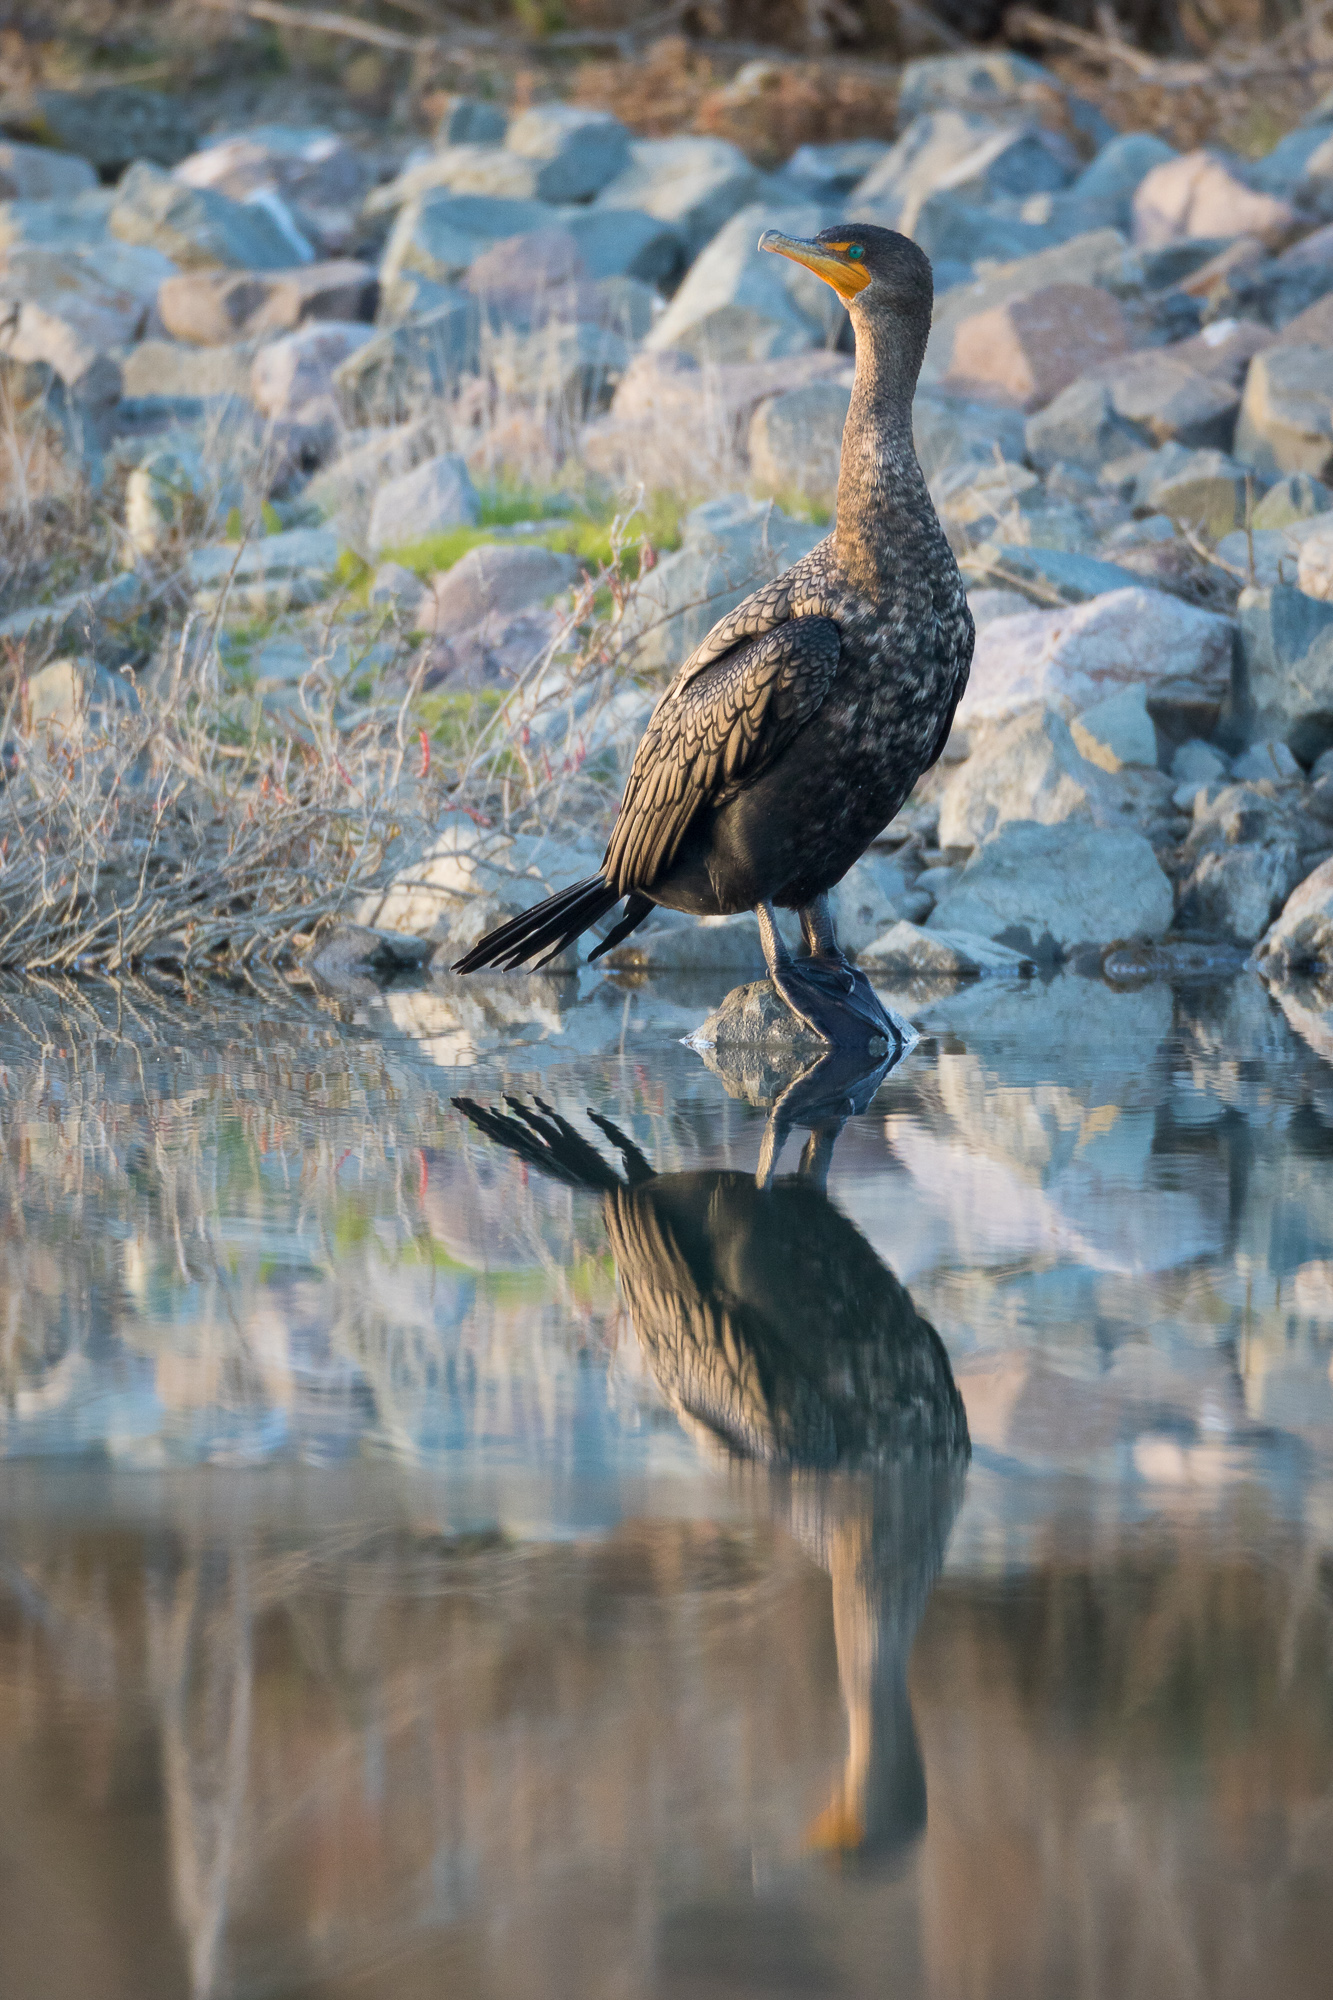 A double-crested cormorant perches on a small rock, reflected in still water, Redwood Shores, CA.